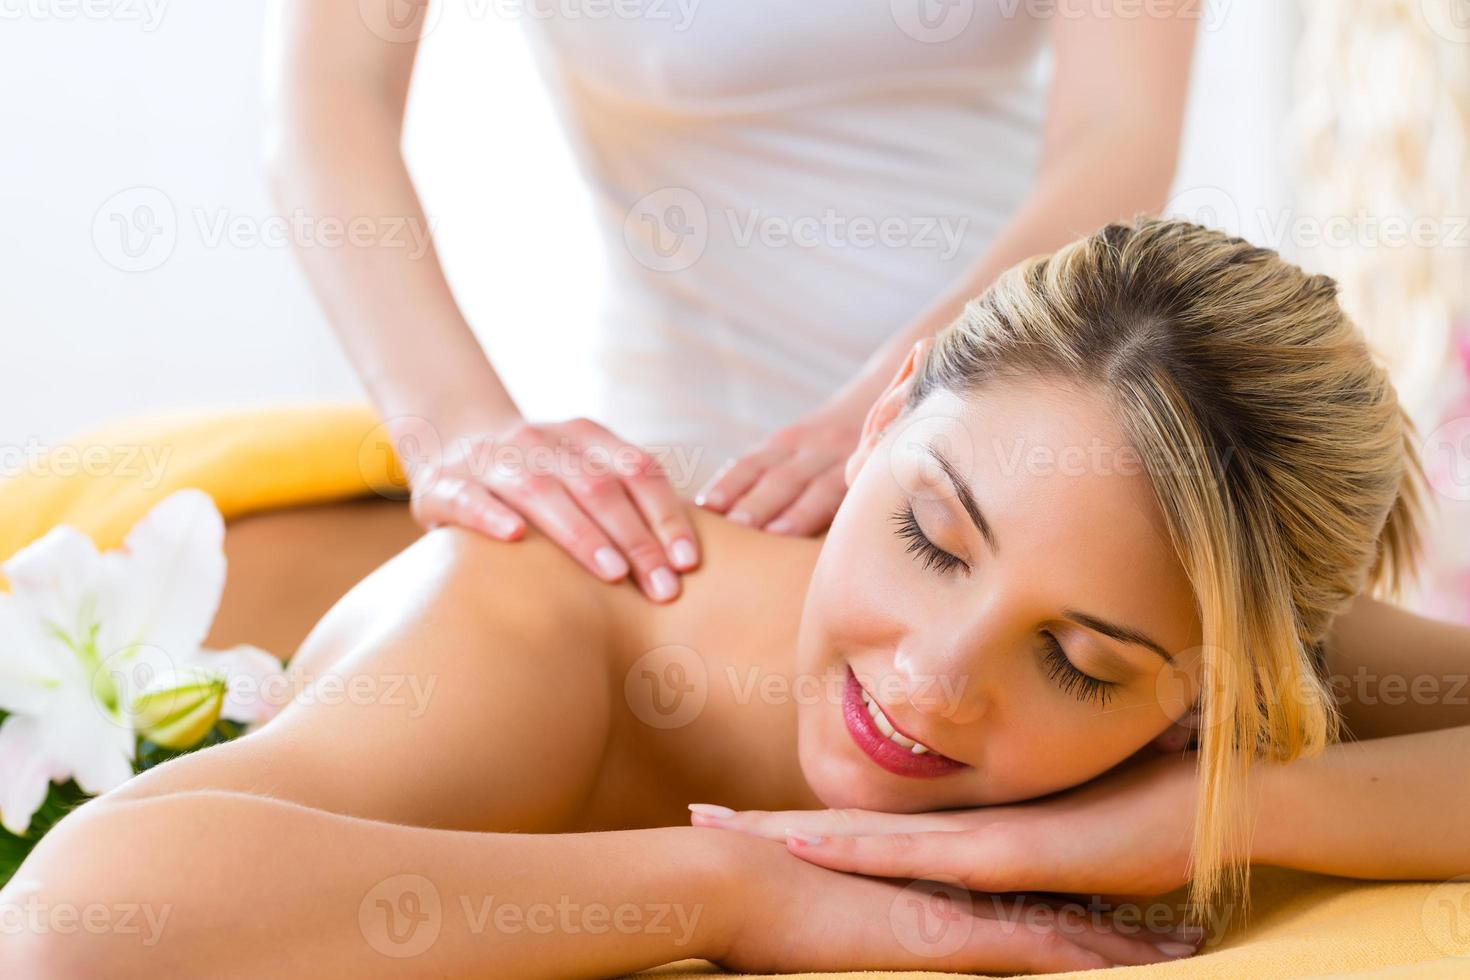 Wellness - woman getting body massage in Spa photo